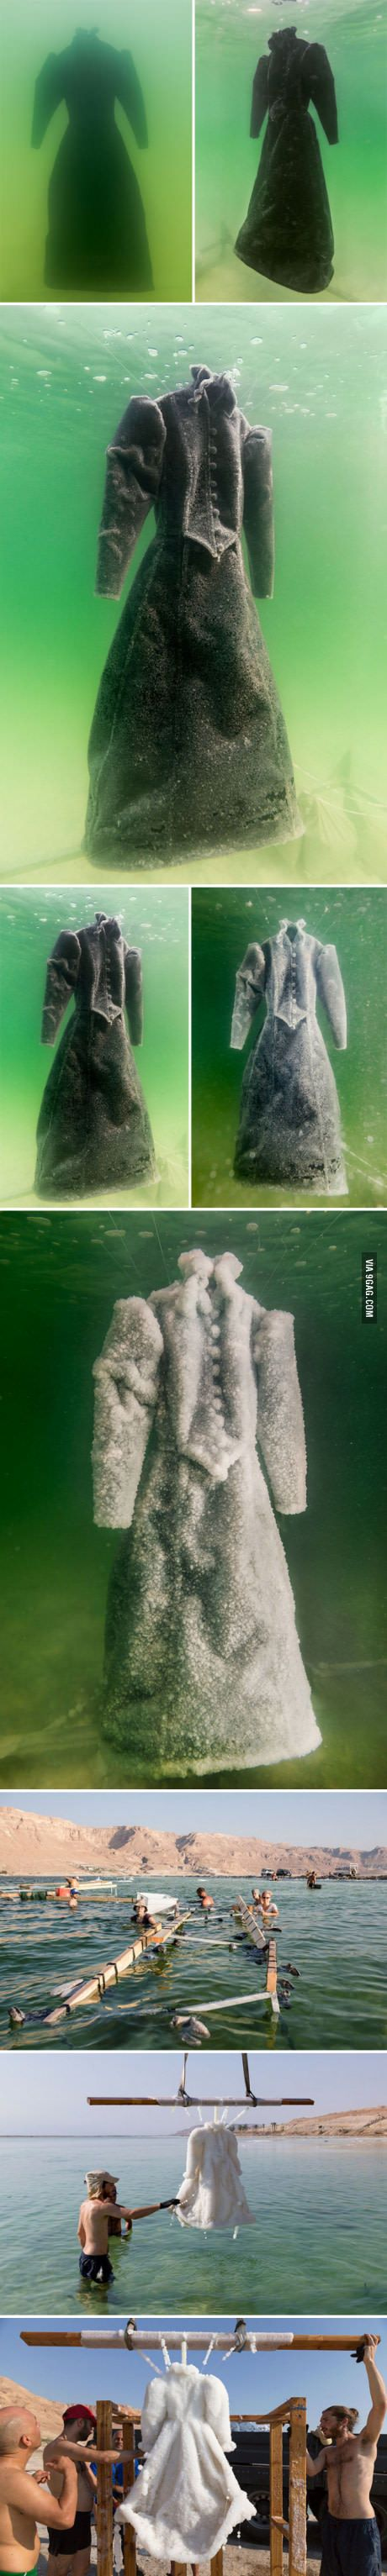 Artist leaves a dress in the Dead Sea for two years